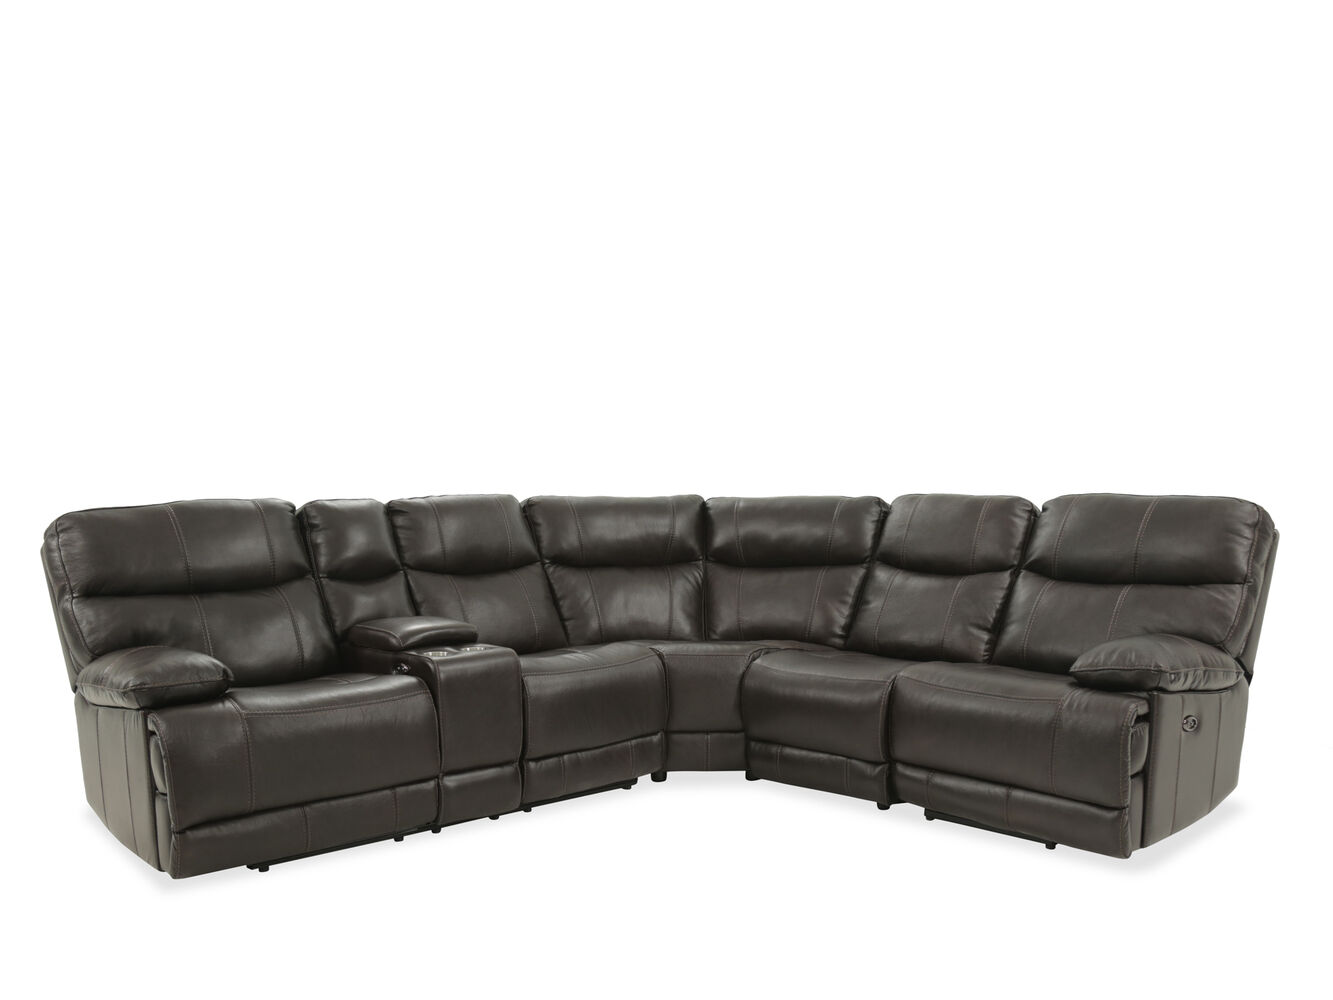 Verona Havana Brown Four Piece Sectional Mathis Brothers Furniture